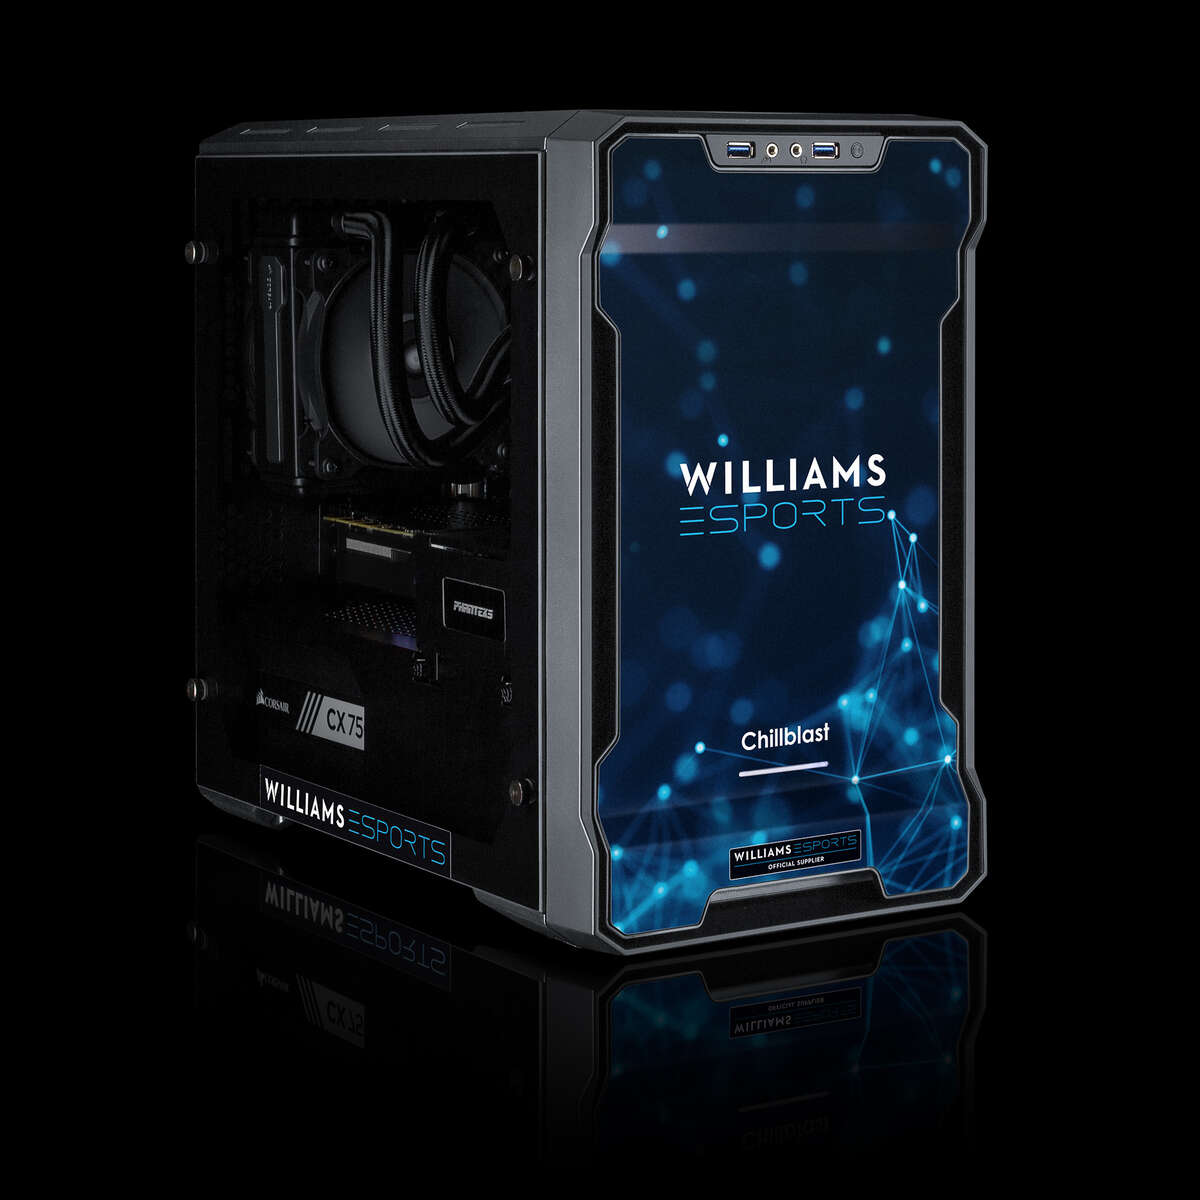 Chillblast Official Williams Esports Pro Gaming PC